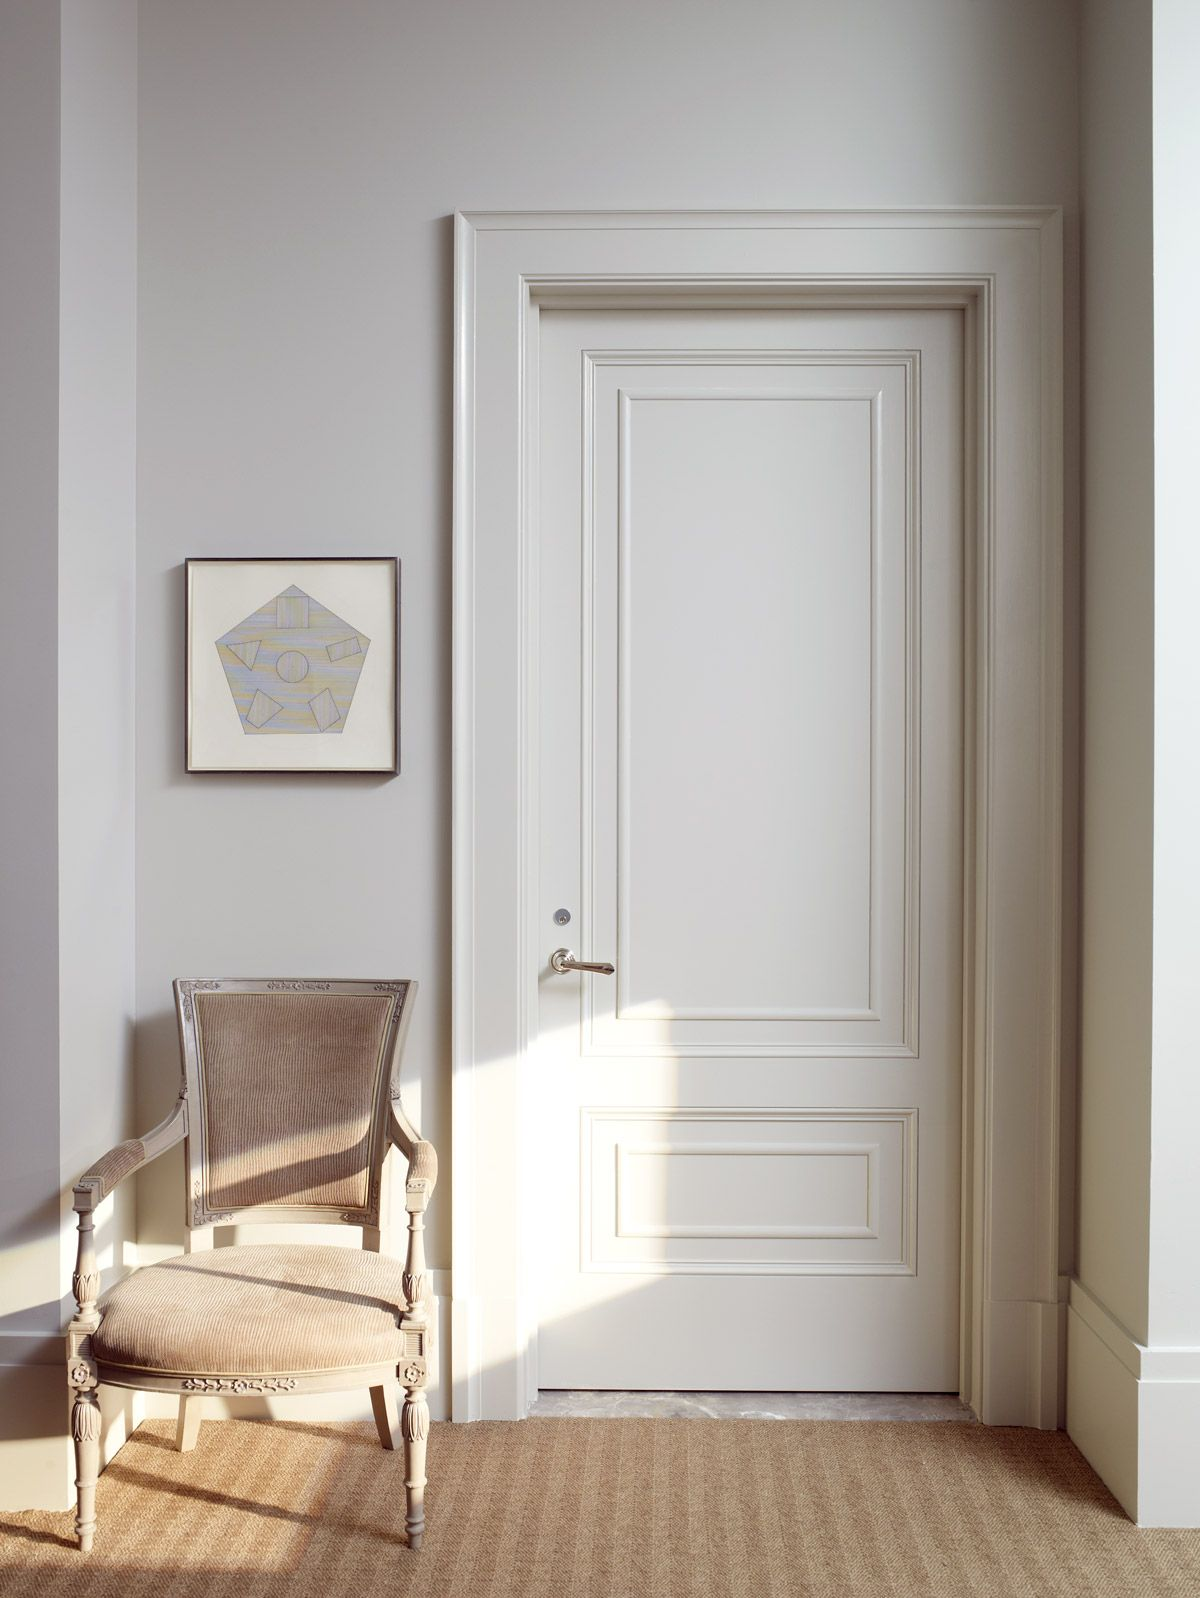 Simple 2 panel interior door with a modern styled home i think 10 questions with thomas obrien eventelaan Choice Image